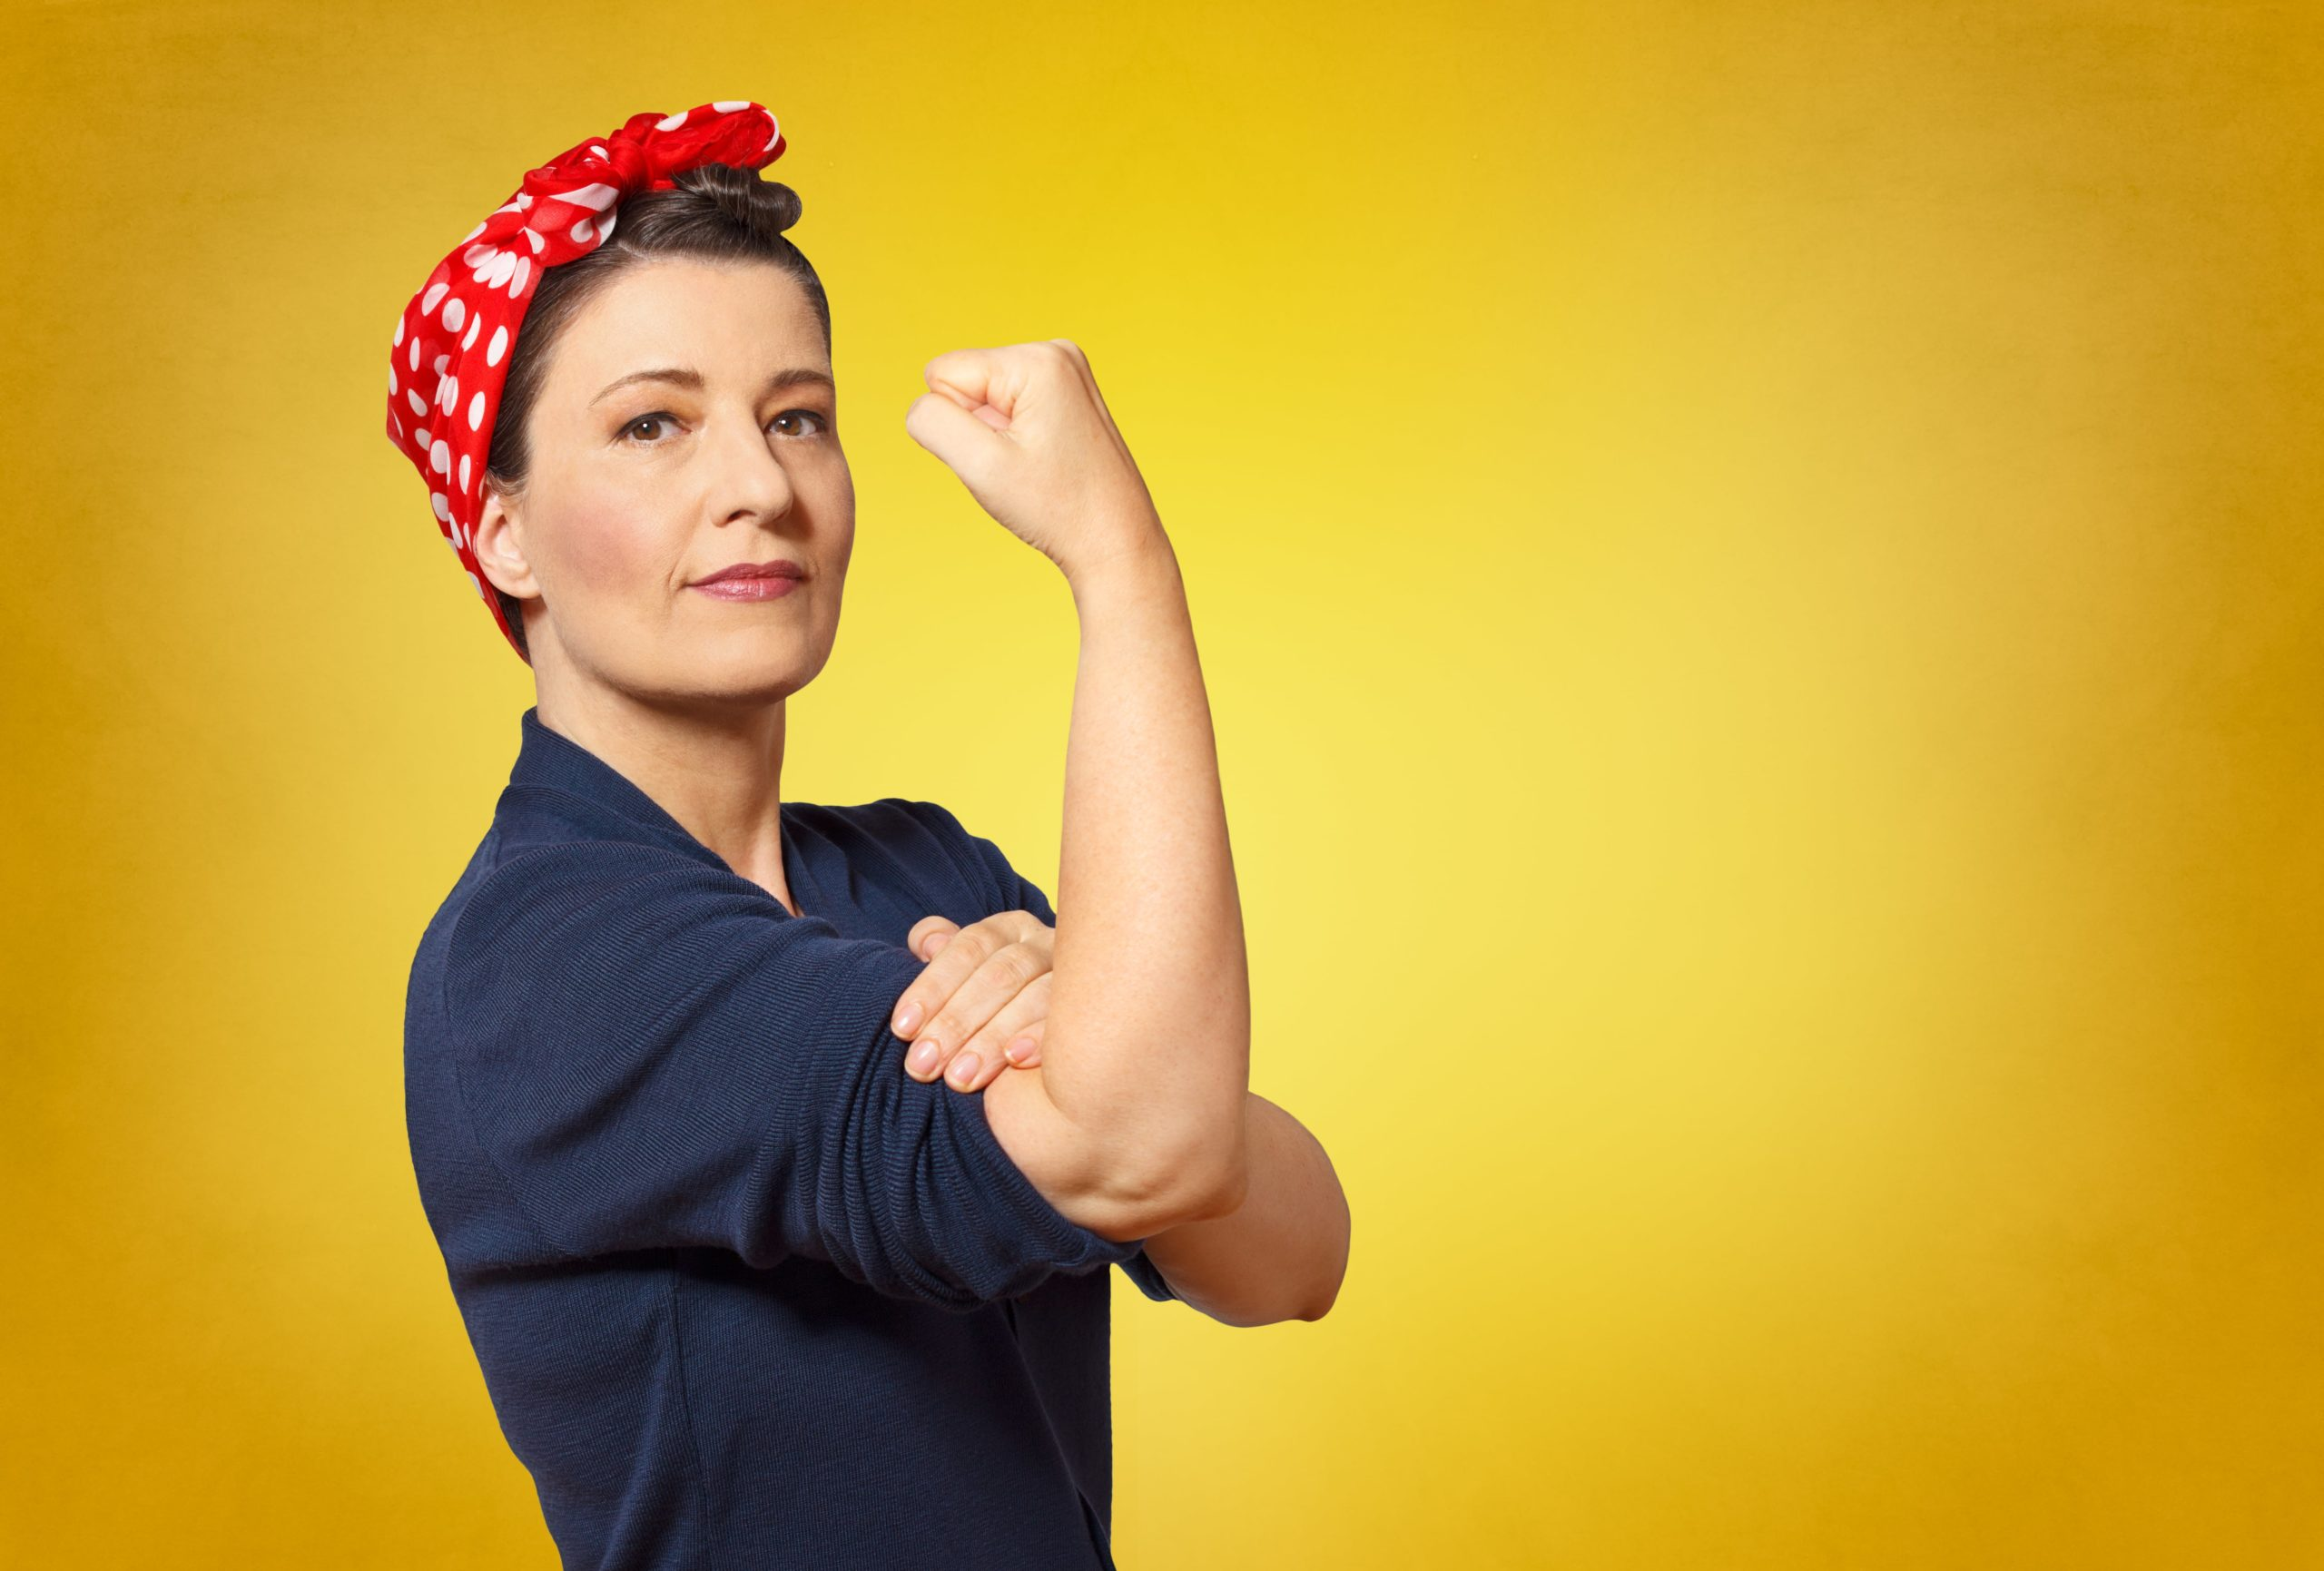 woman dressed as rosie the riveter